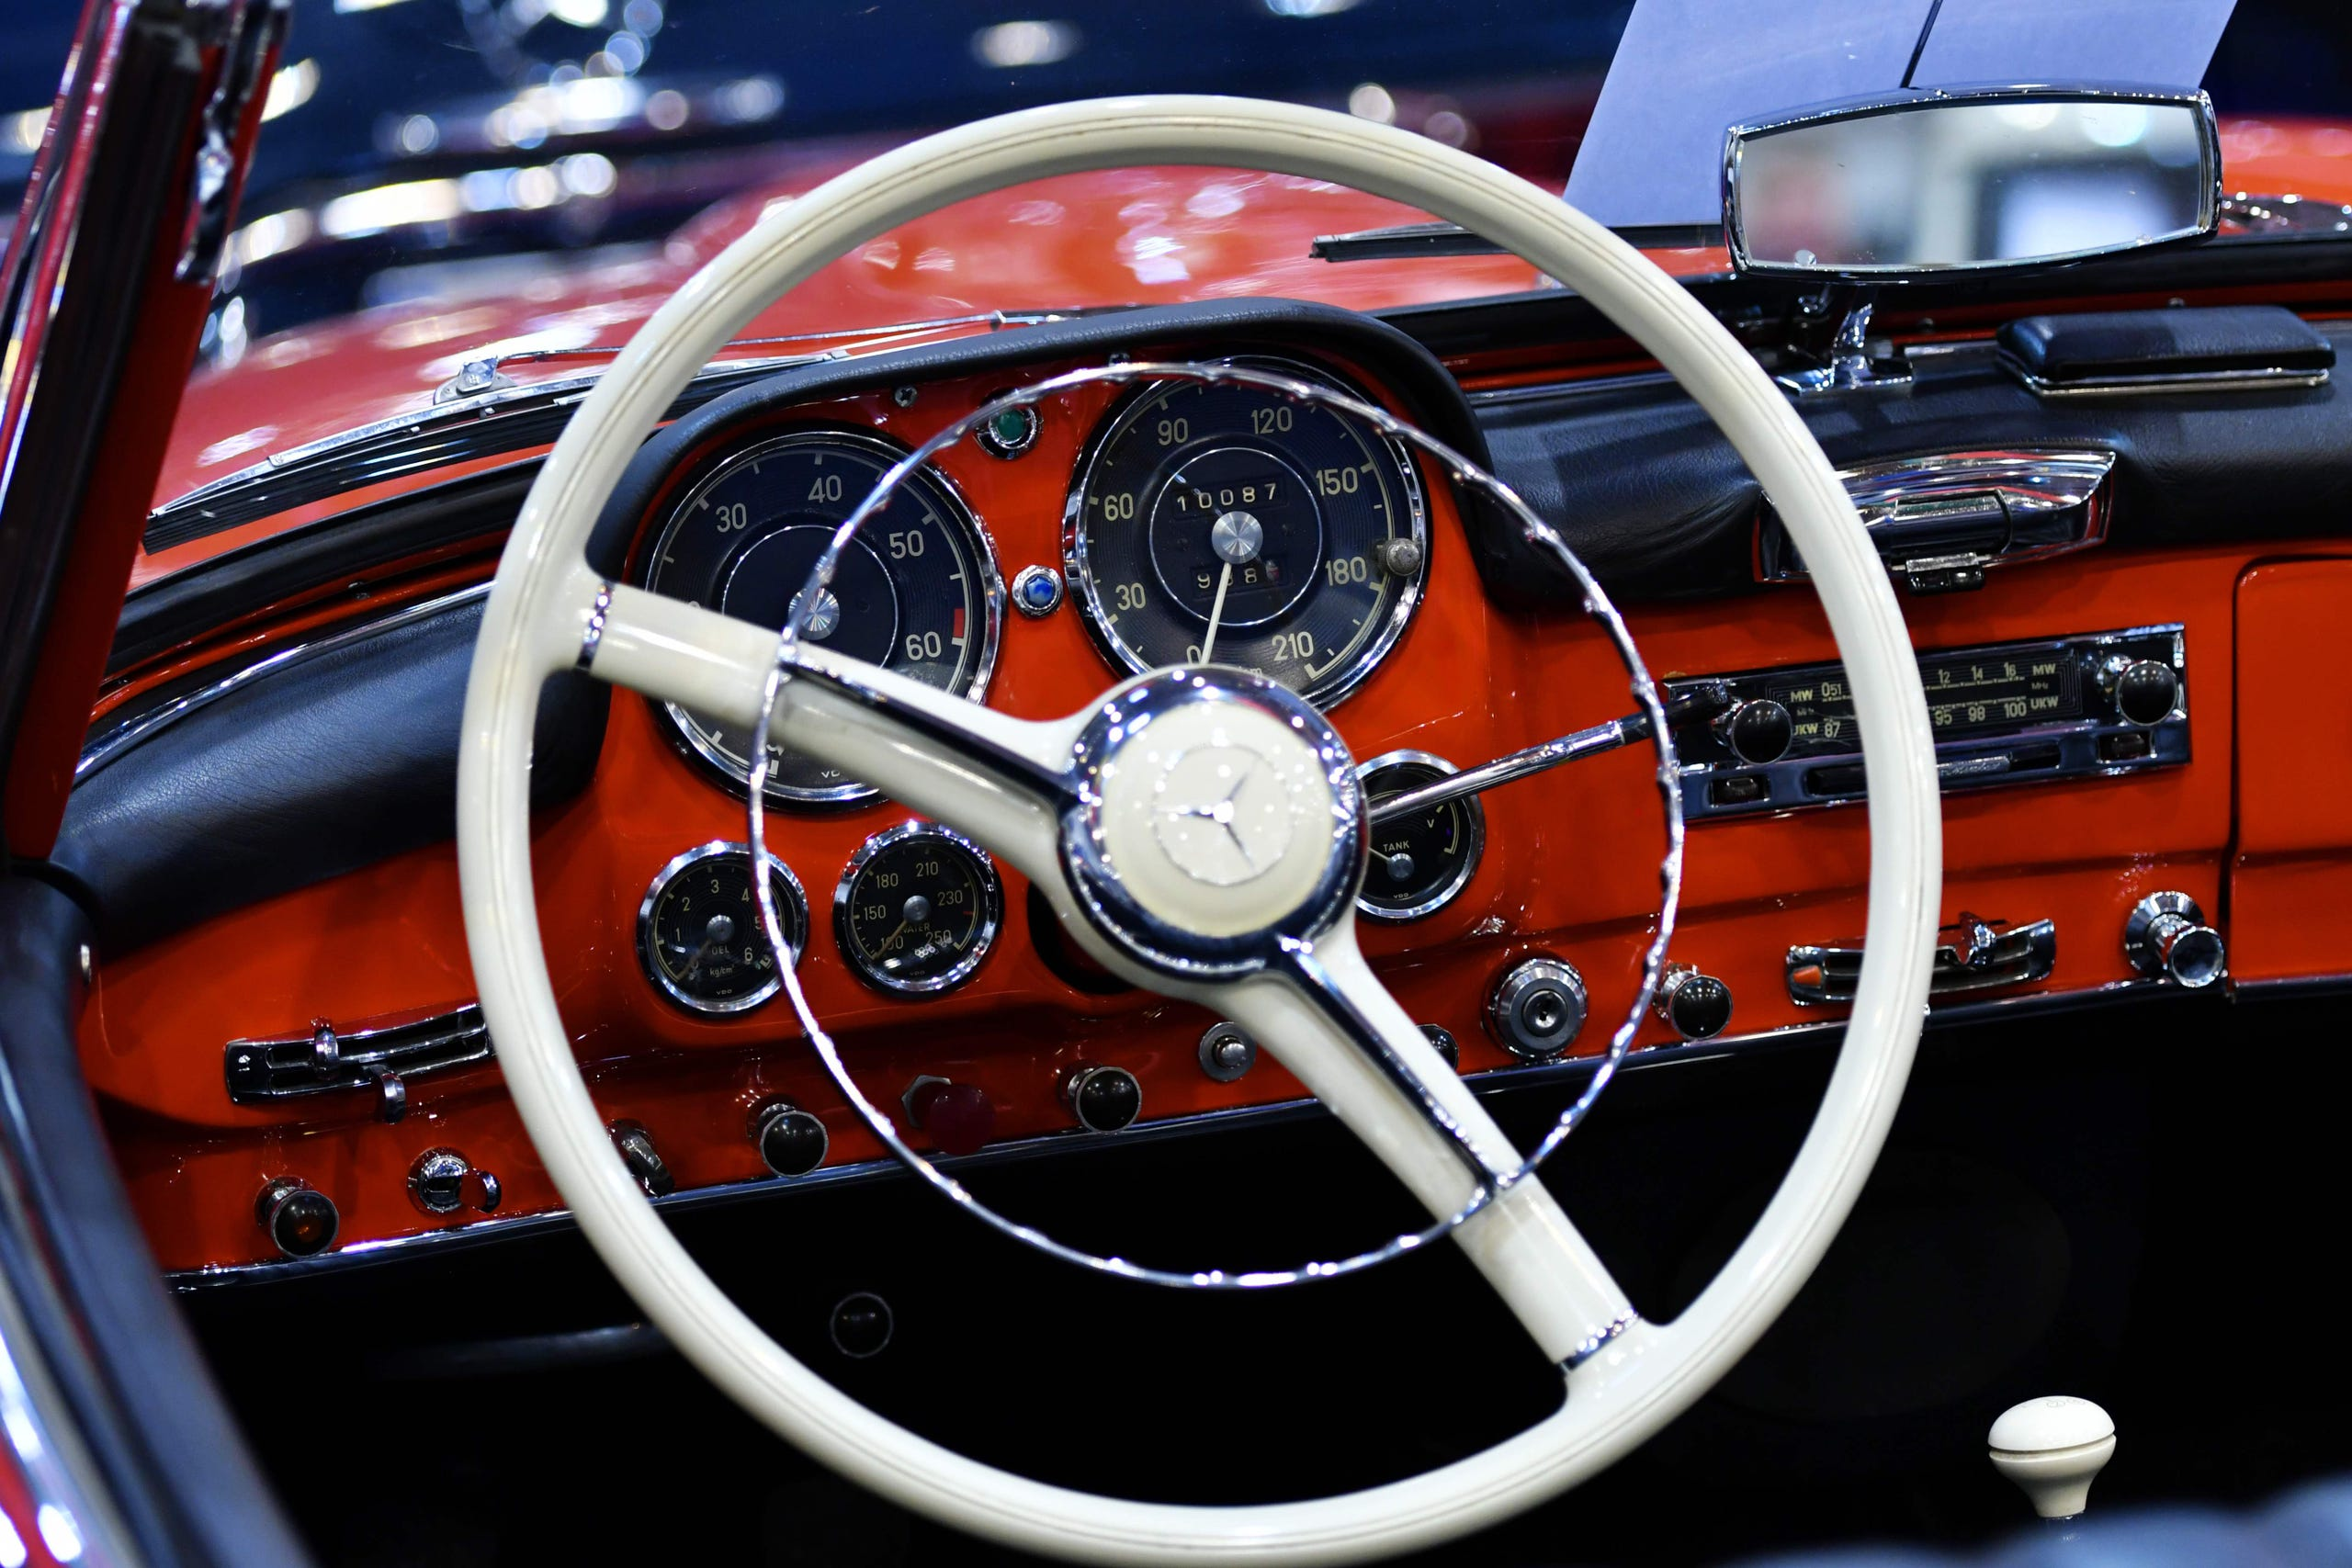 A picture taken on December 1, 2017 shows the steering wheel and the inside of a Mercedes-Benz classic car displayed during the 'Essen Motor Show' fair in Essen, western Germany.